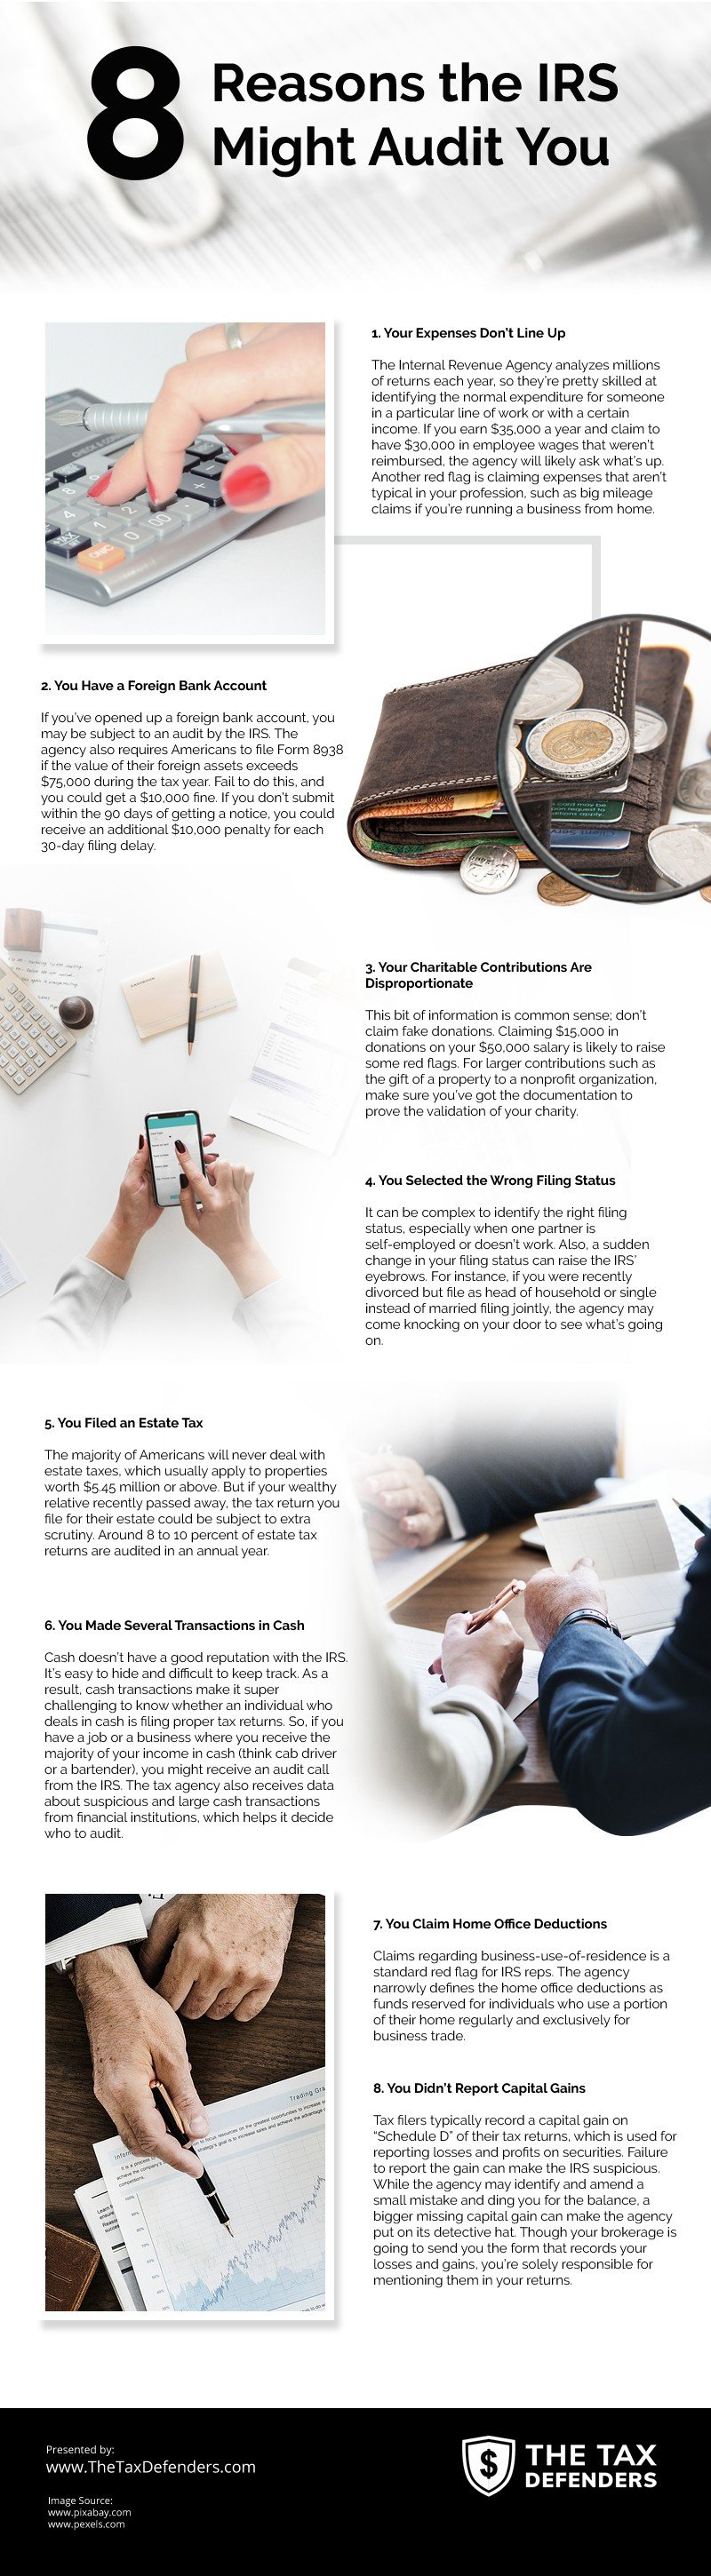 8 Reasons the IRS Might Audit You [infographic]